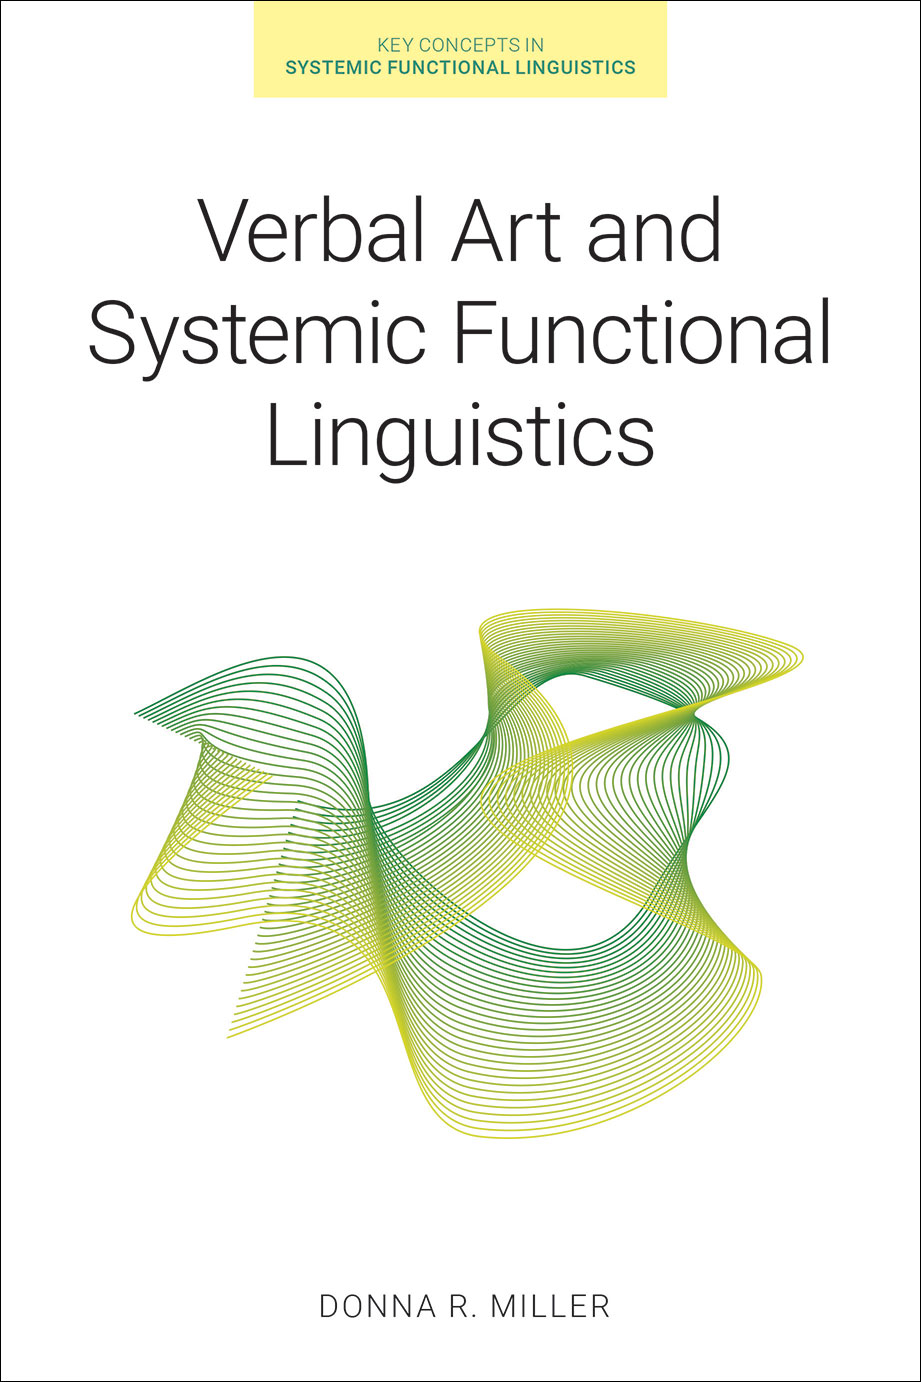 Verbal Art and Systemic Functional Linguistics - Donna R. Miller